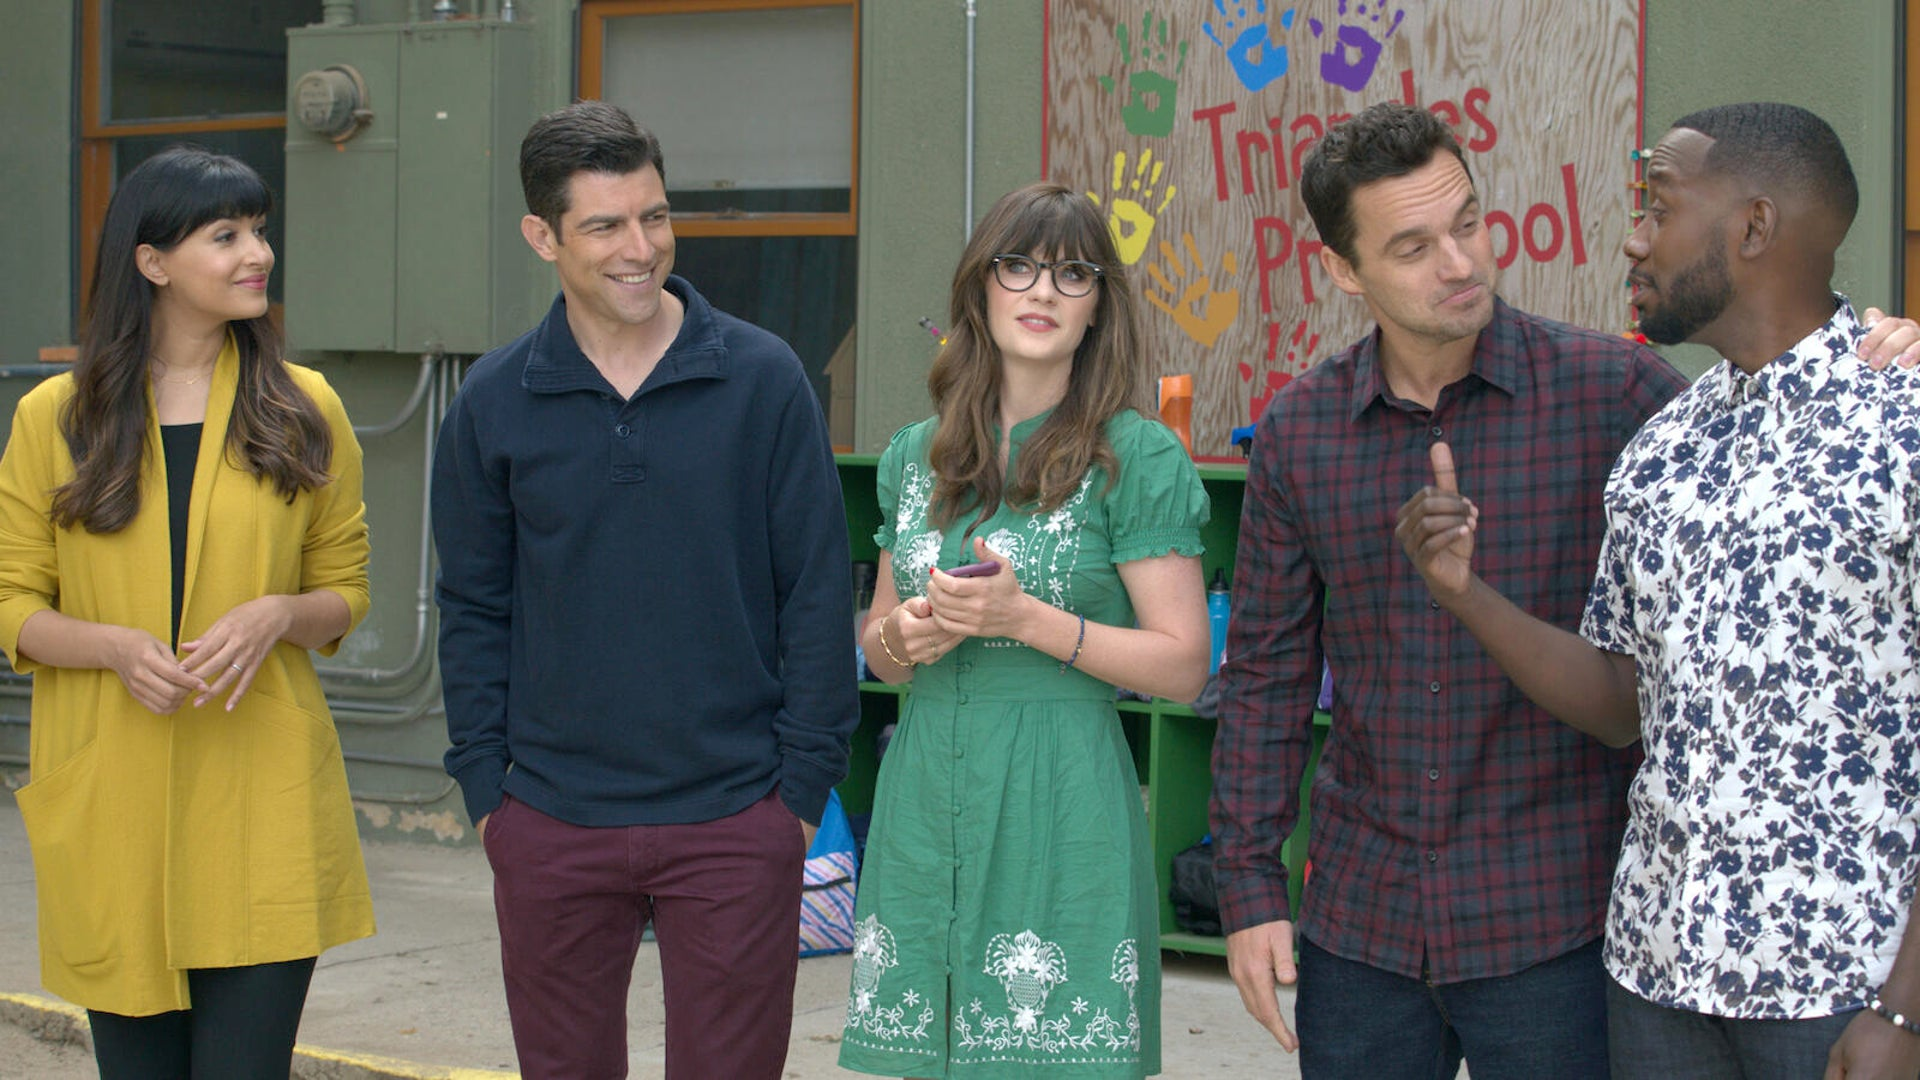 Hannah Simone, Max Greenfield, Zooey Deschanel, Jake Johnson, and Lamorne Morris, New Girl